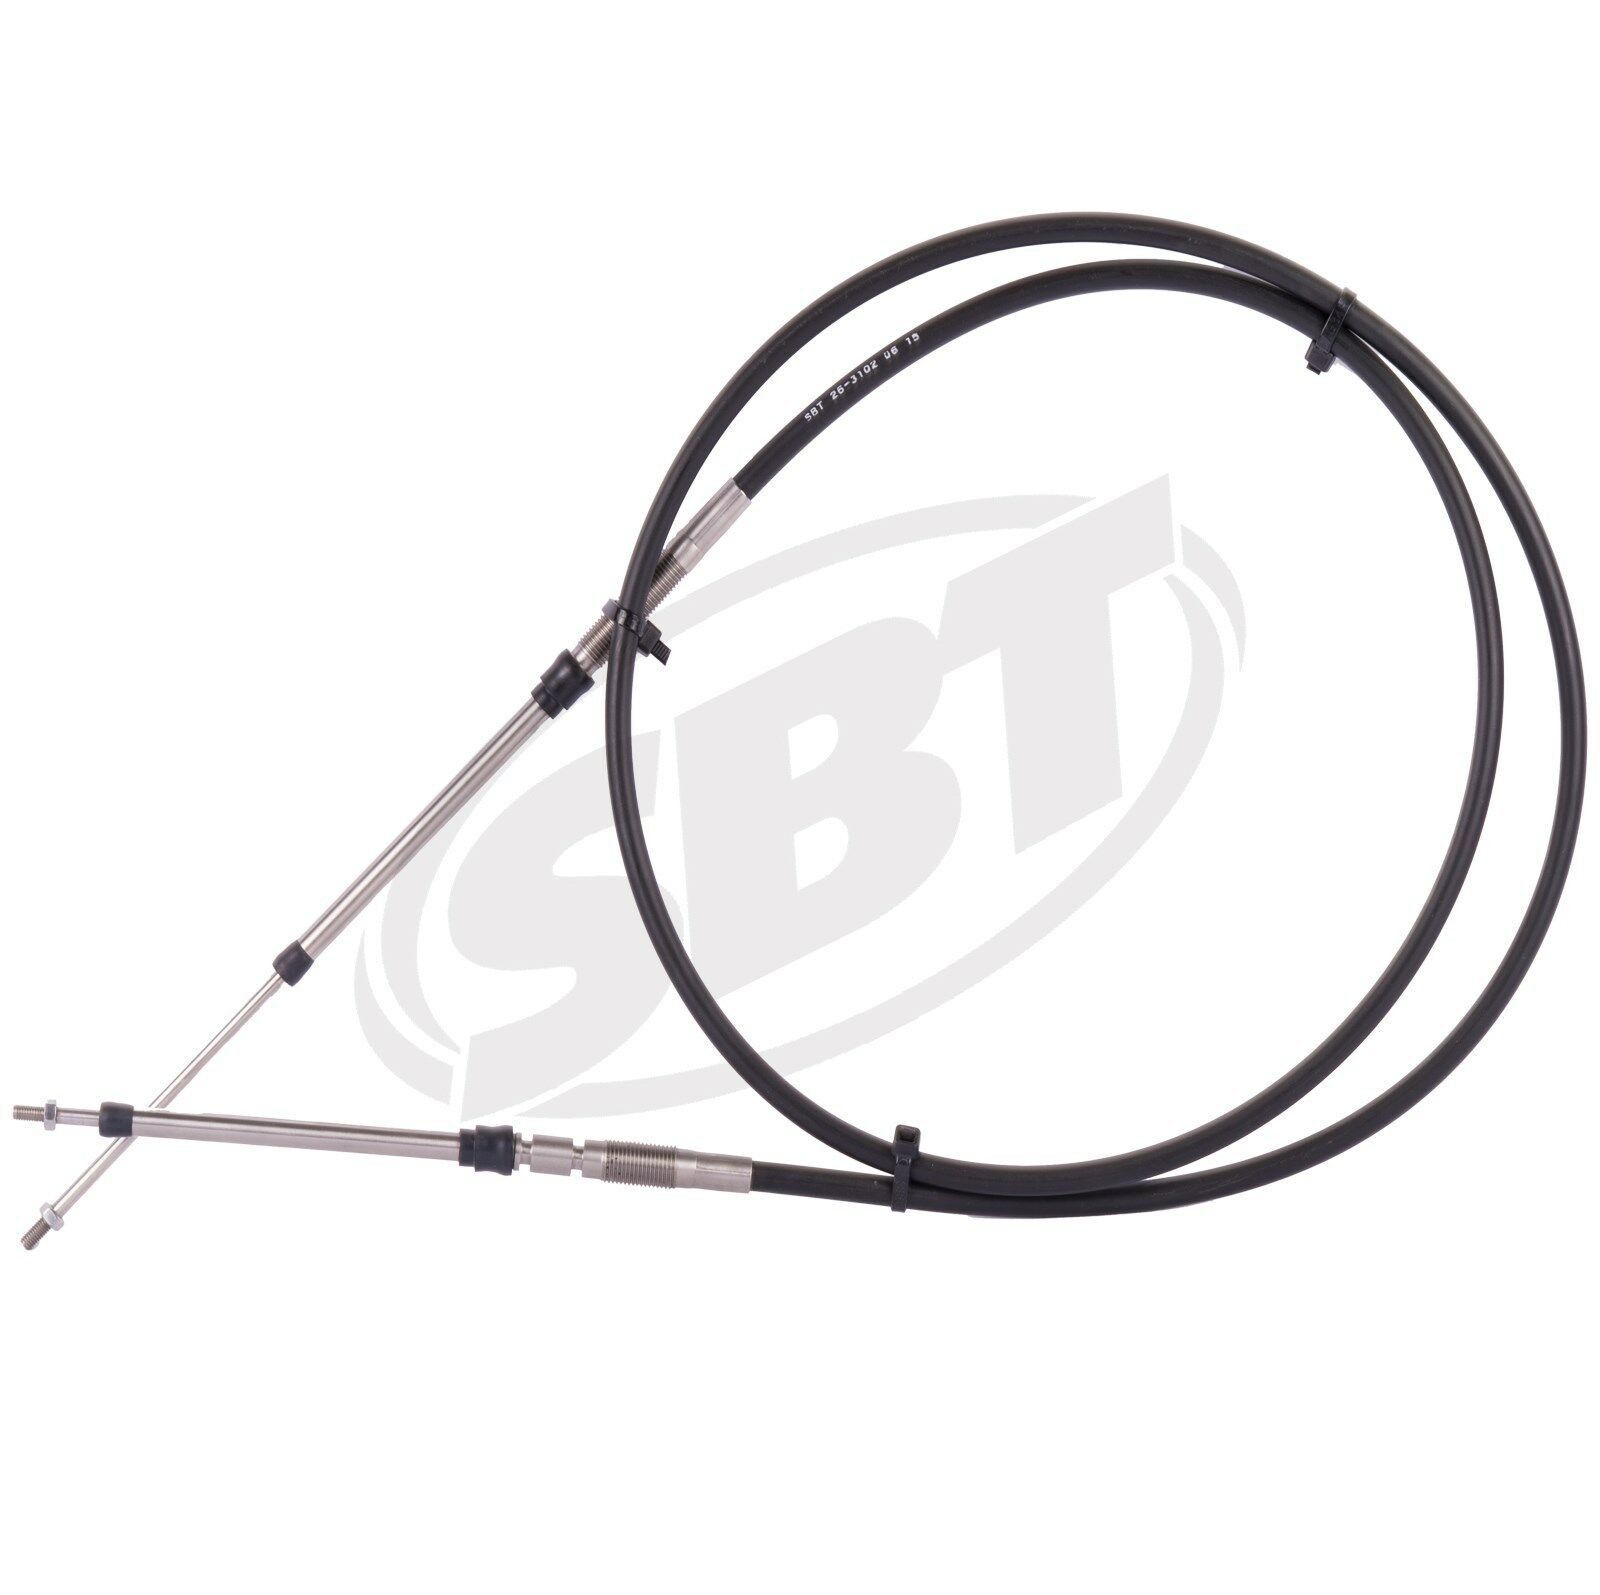 Seadoo Steering Cable GTS GS 271000436 1998 1999 2000 2001